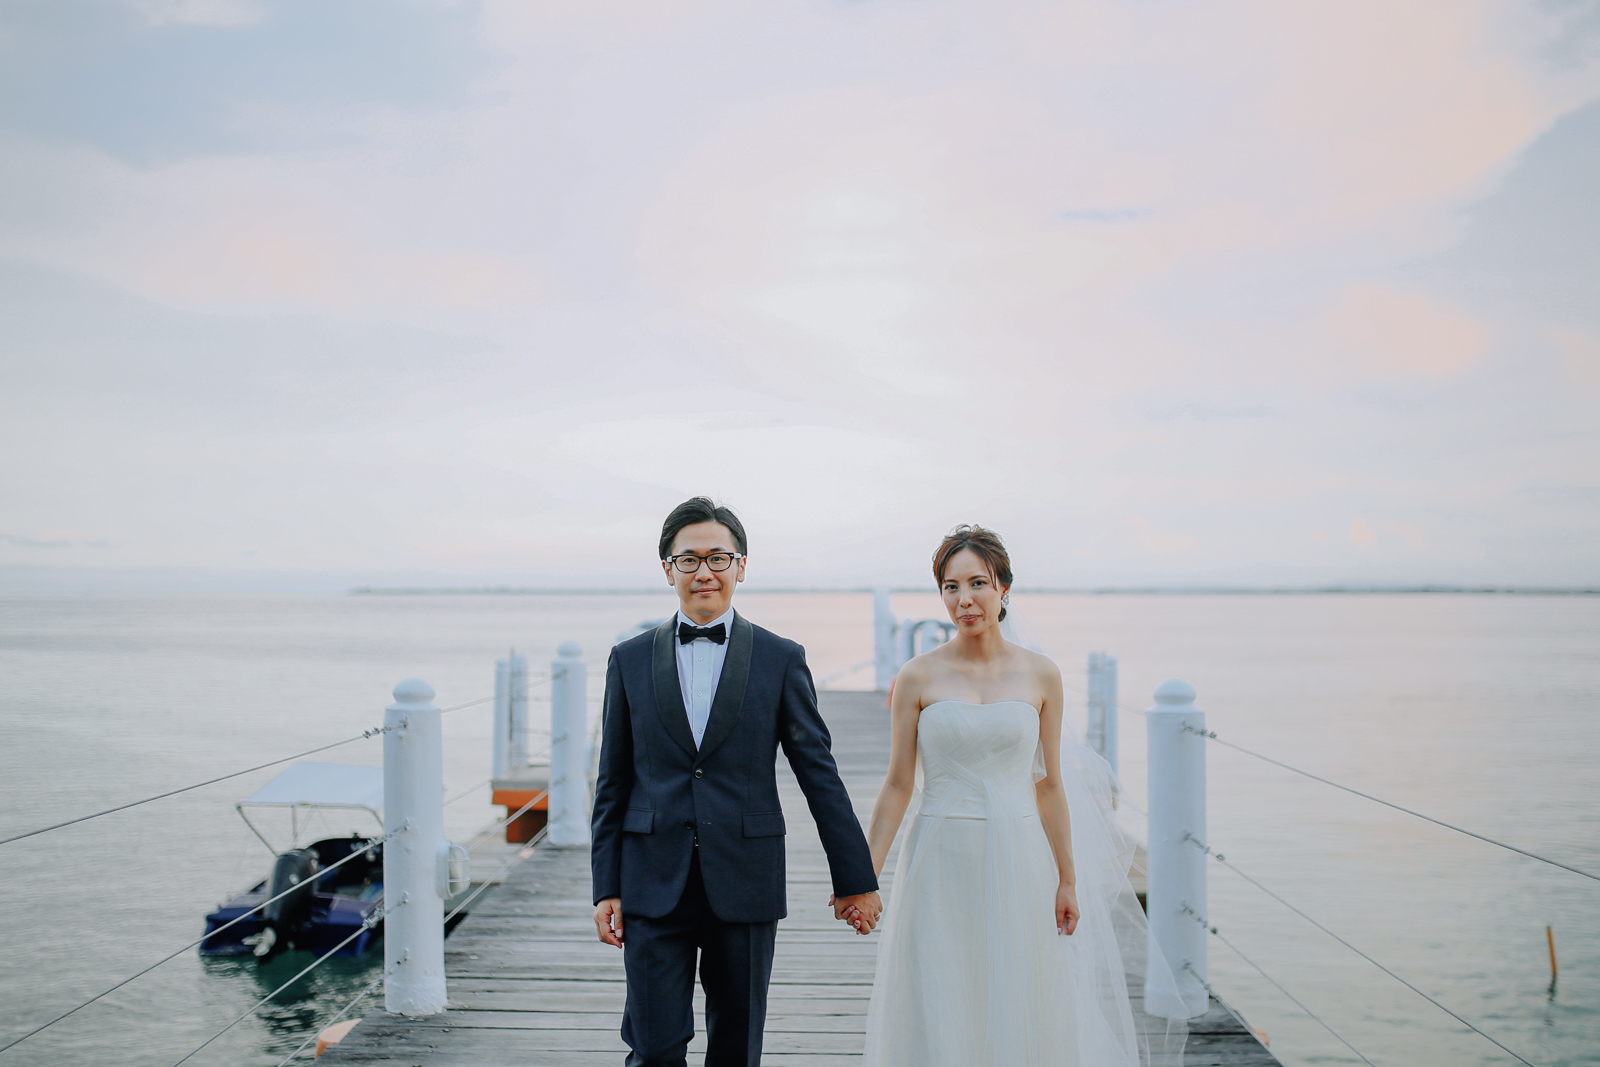 Cebu Wedding Photo Video Packages